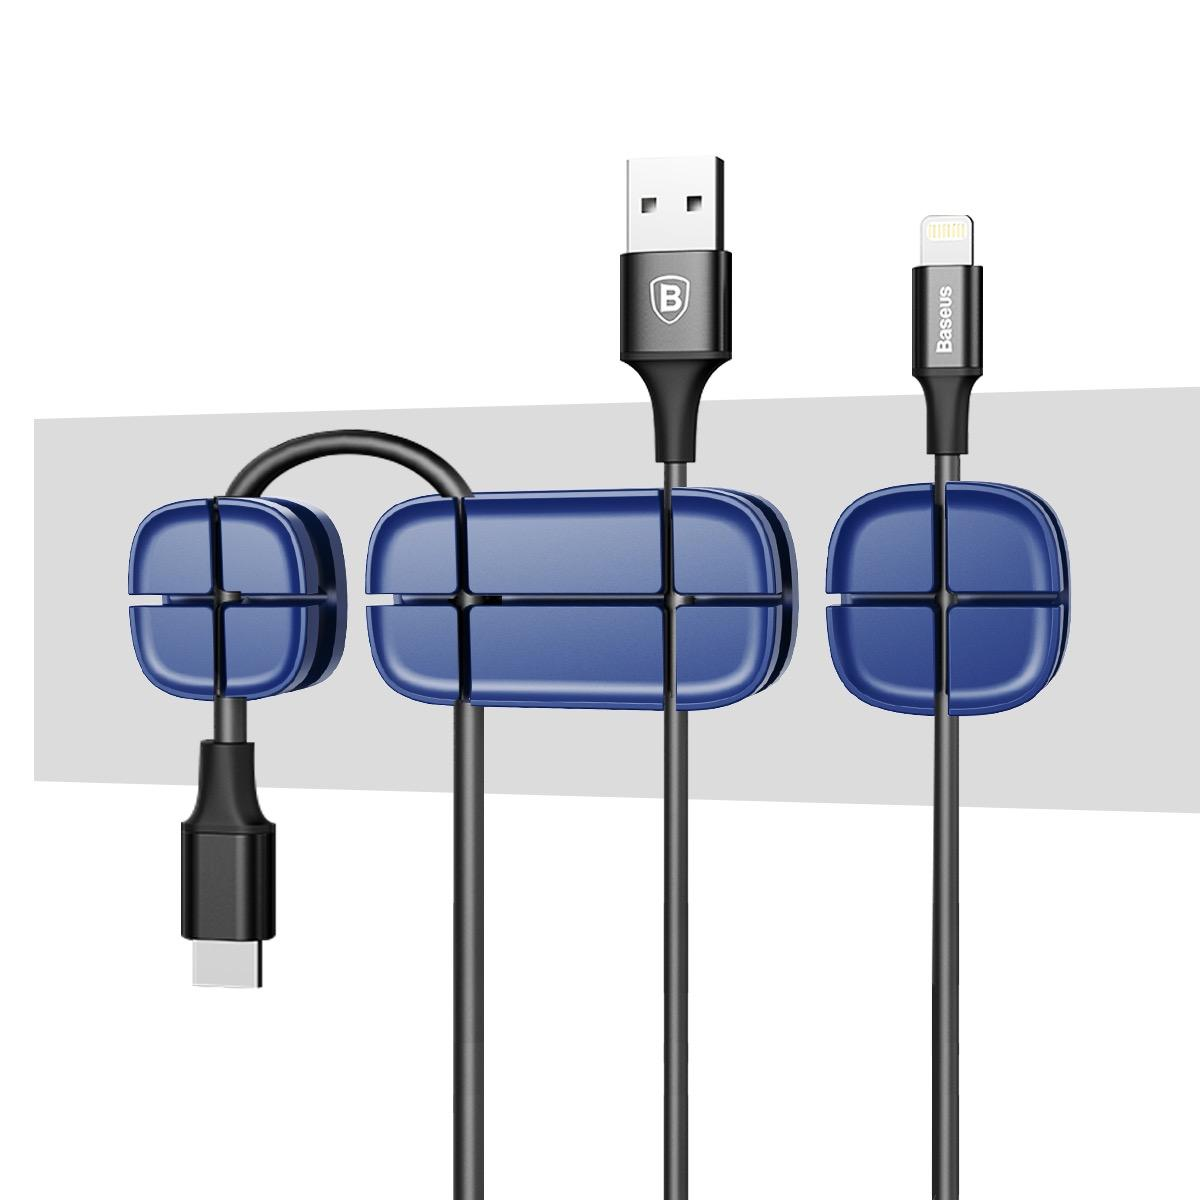 Buy Baseus Cables Accessories Online Lazada Rapid Series 3 In 1 Micro Usb Lightning Type C 3a 12m Corss Peas Cable Clip Desktop Tidy Organiser Charger Line Holder Home Car